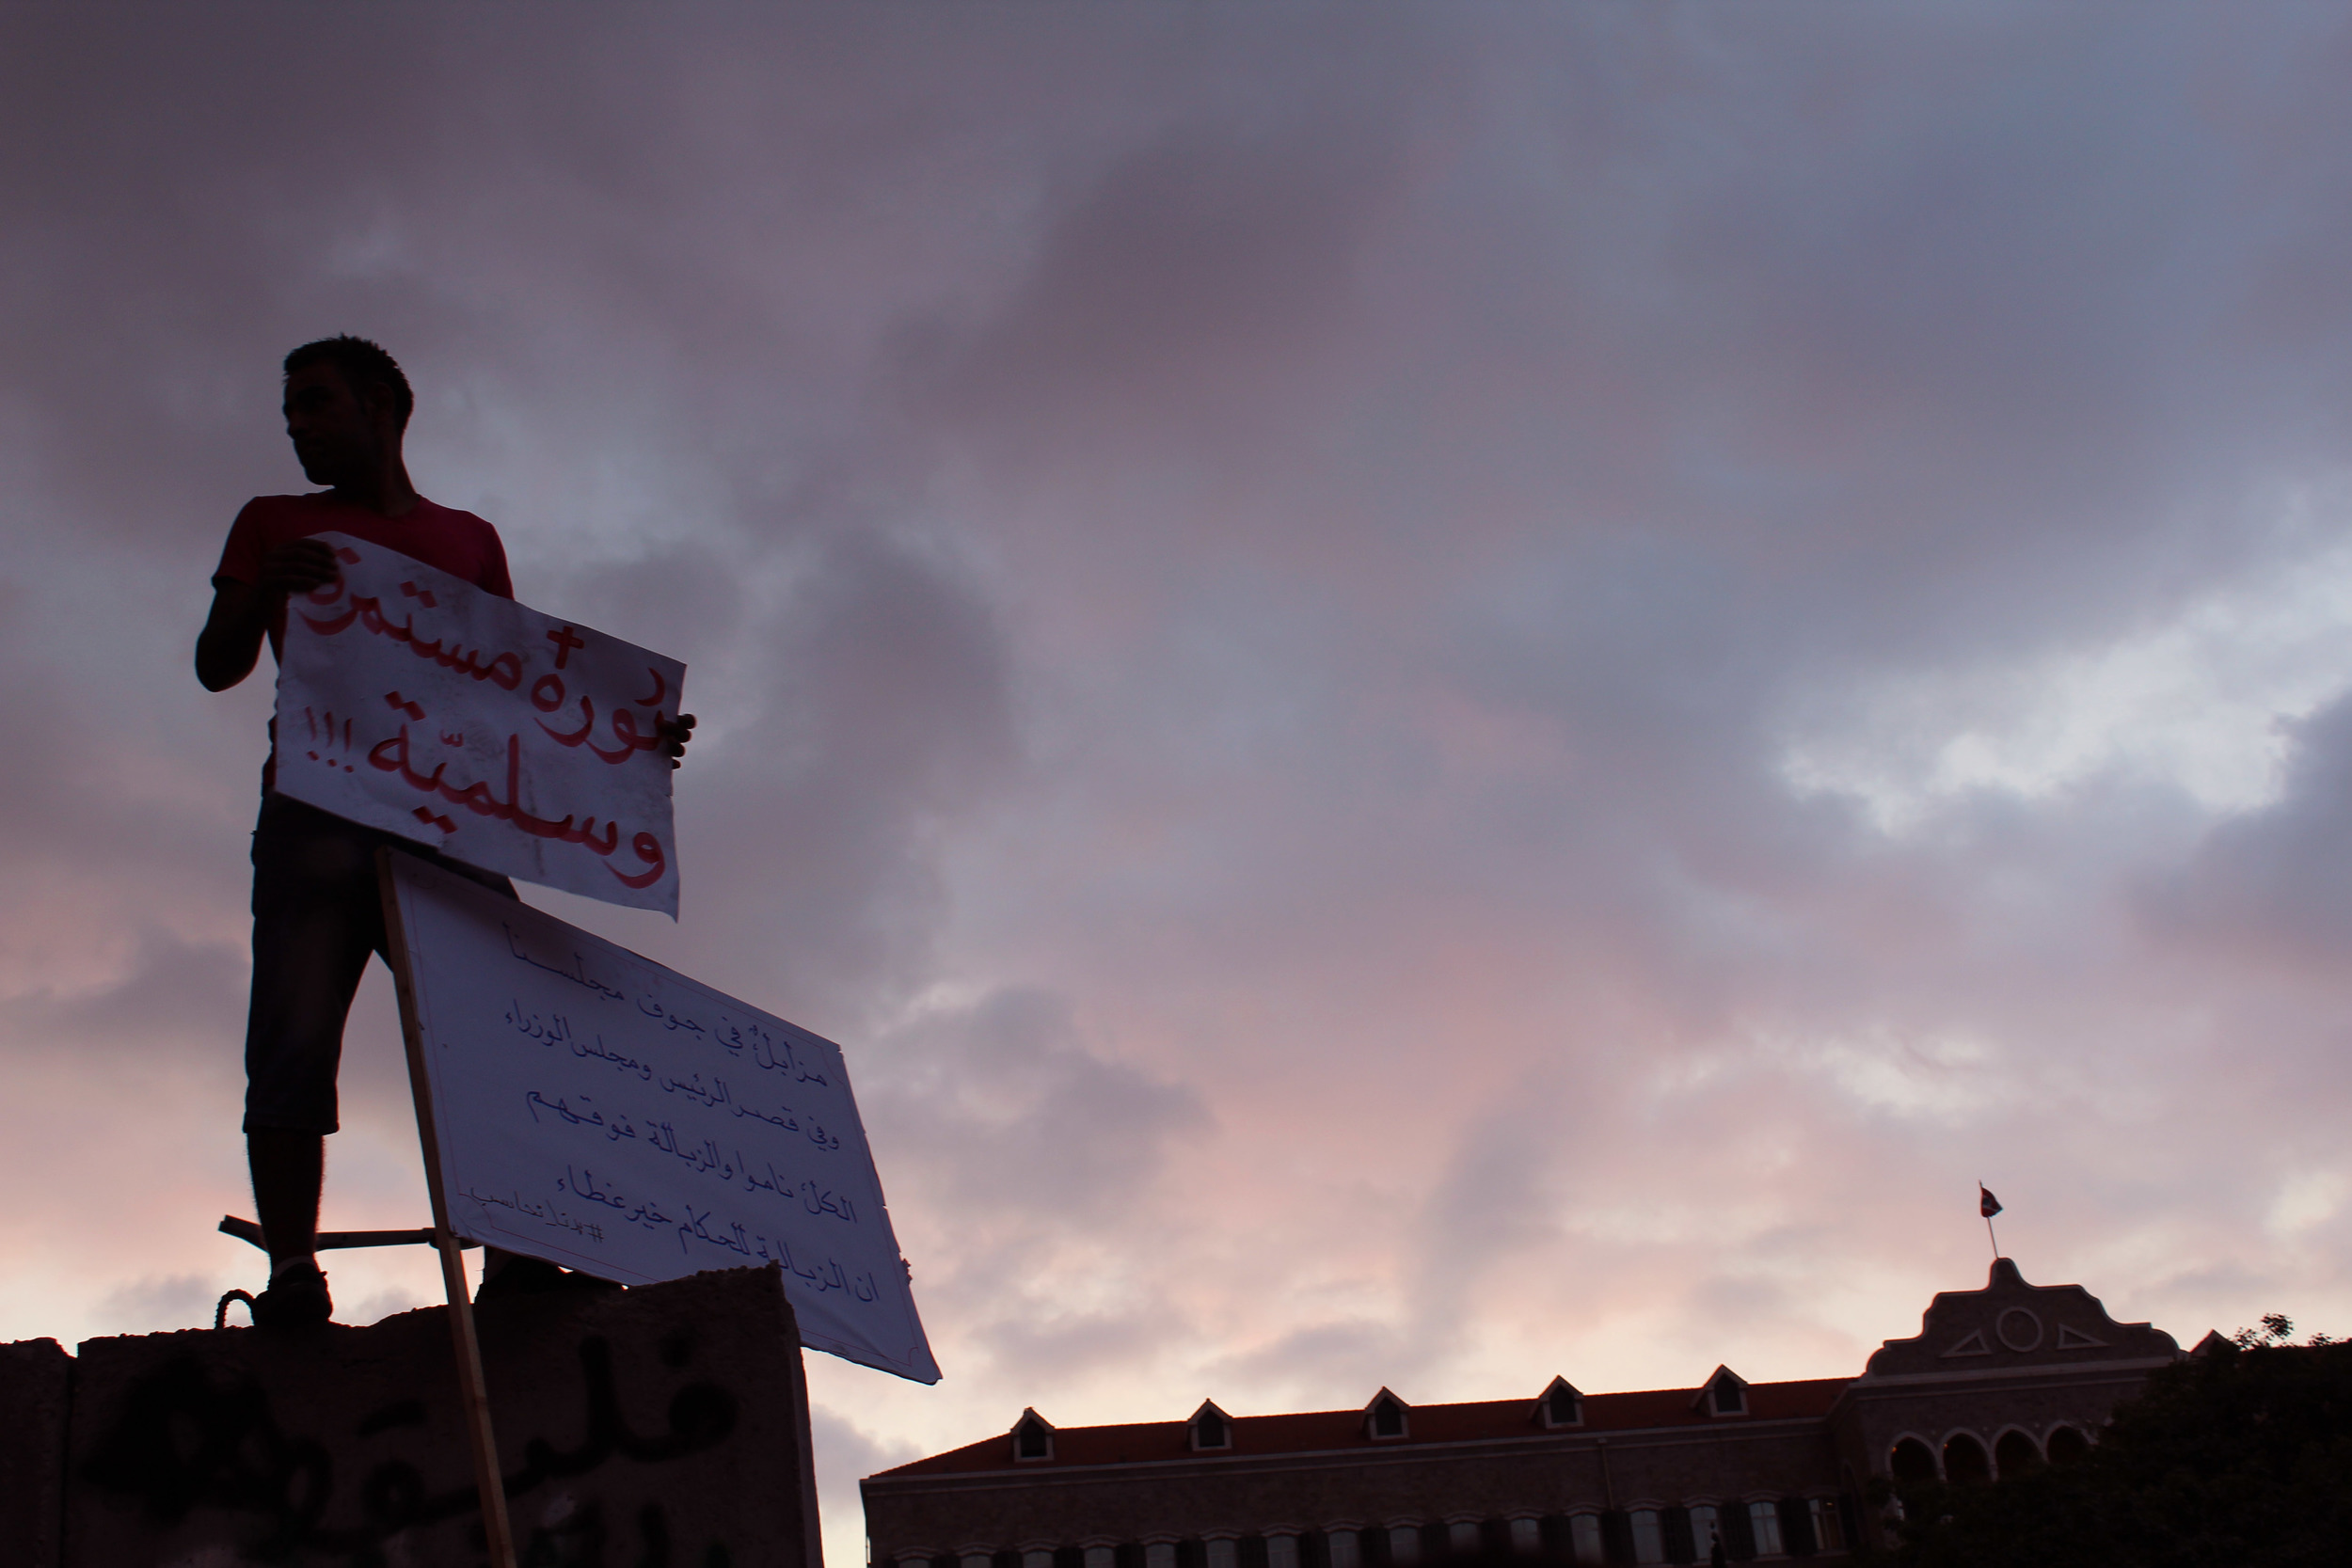 """Image: A protester in   Beirut on top of a concrete barrier near the Grand Serail in Riad Solh Square holding a sign that says, """"The revolution is ongoing and peaceful."""" Photo by Sarah Shmaitilly"""